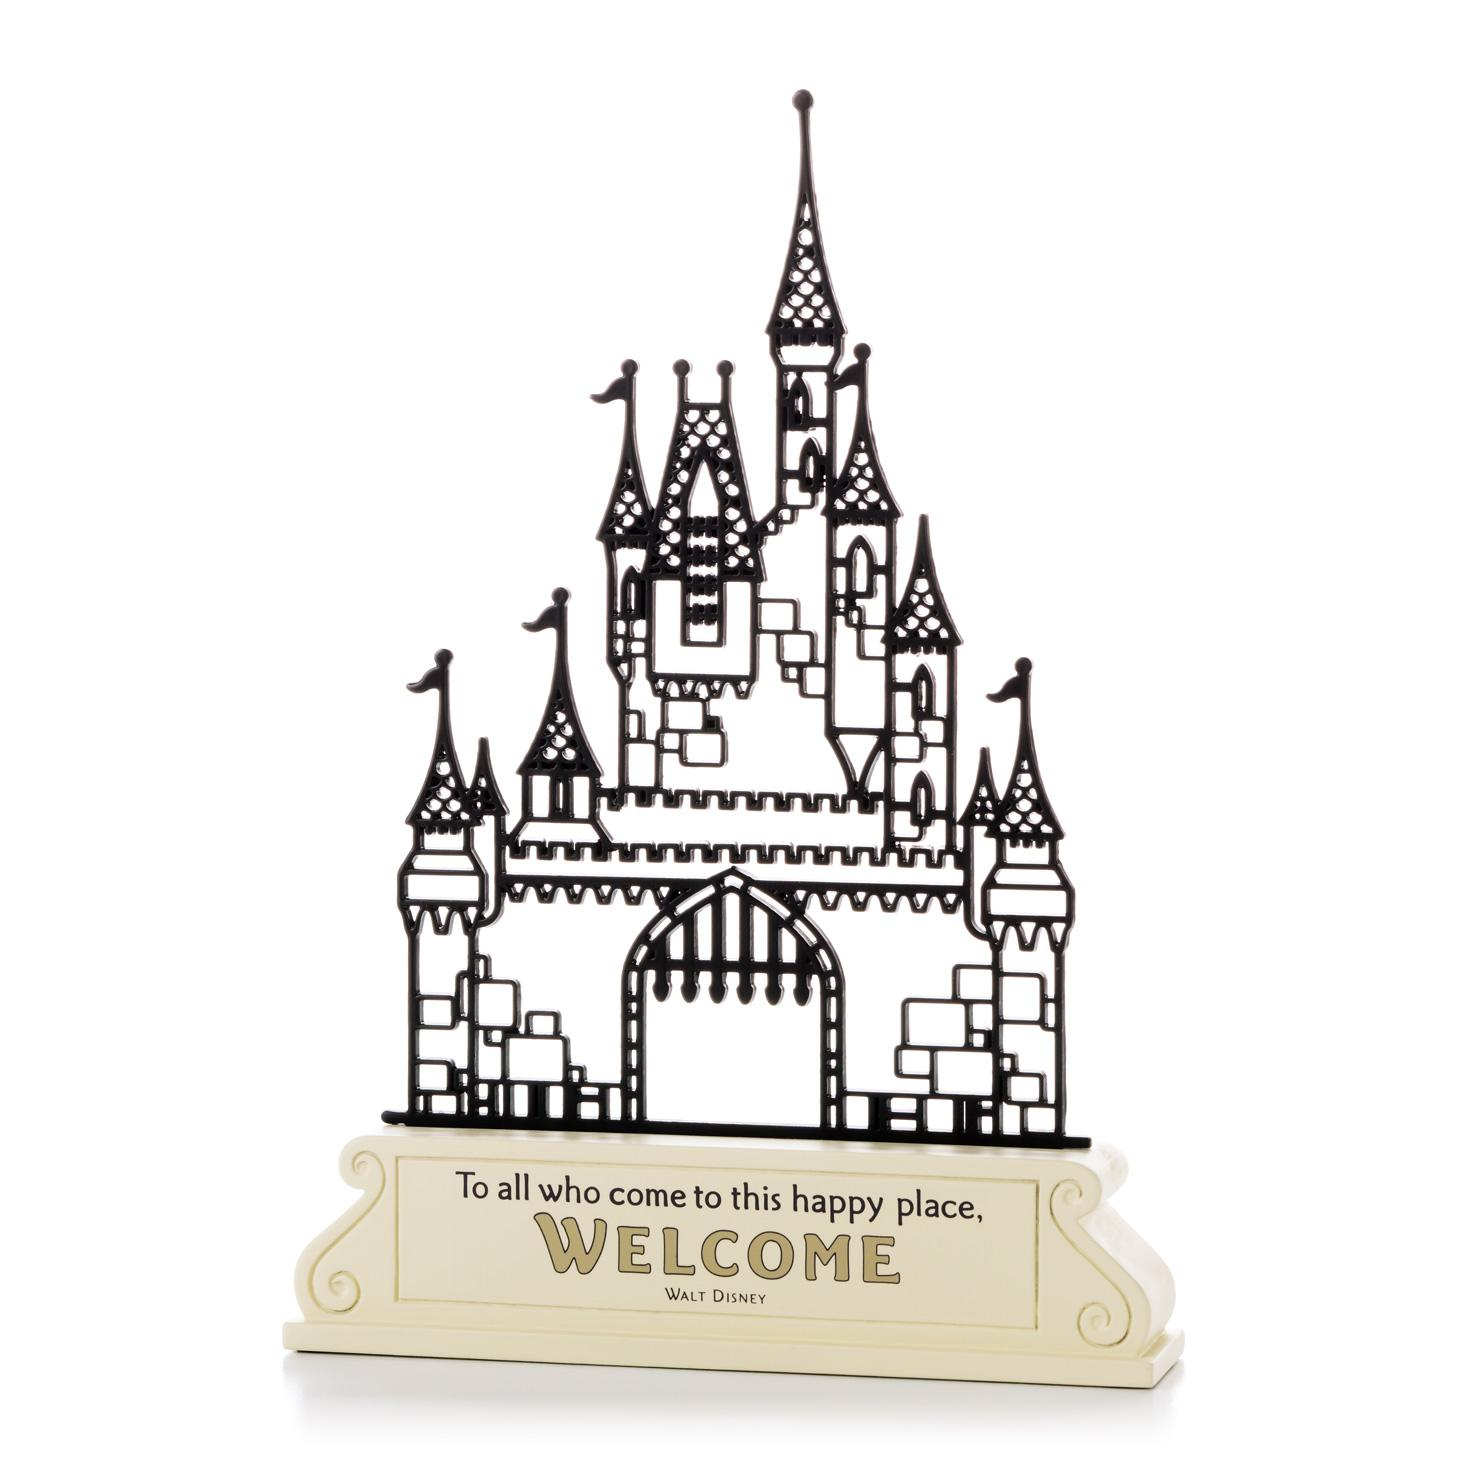 Magic kingdom castle outline clipart image black and white 78+ images about All Things Disney on Pinterest | Disney, Walt ... image black and white